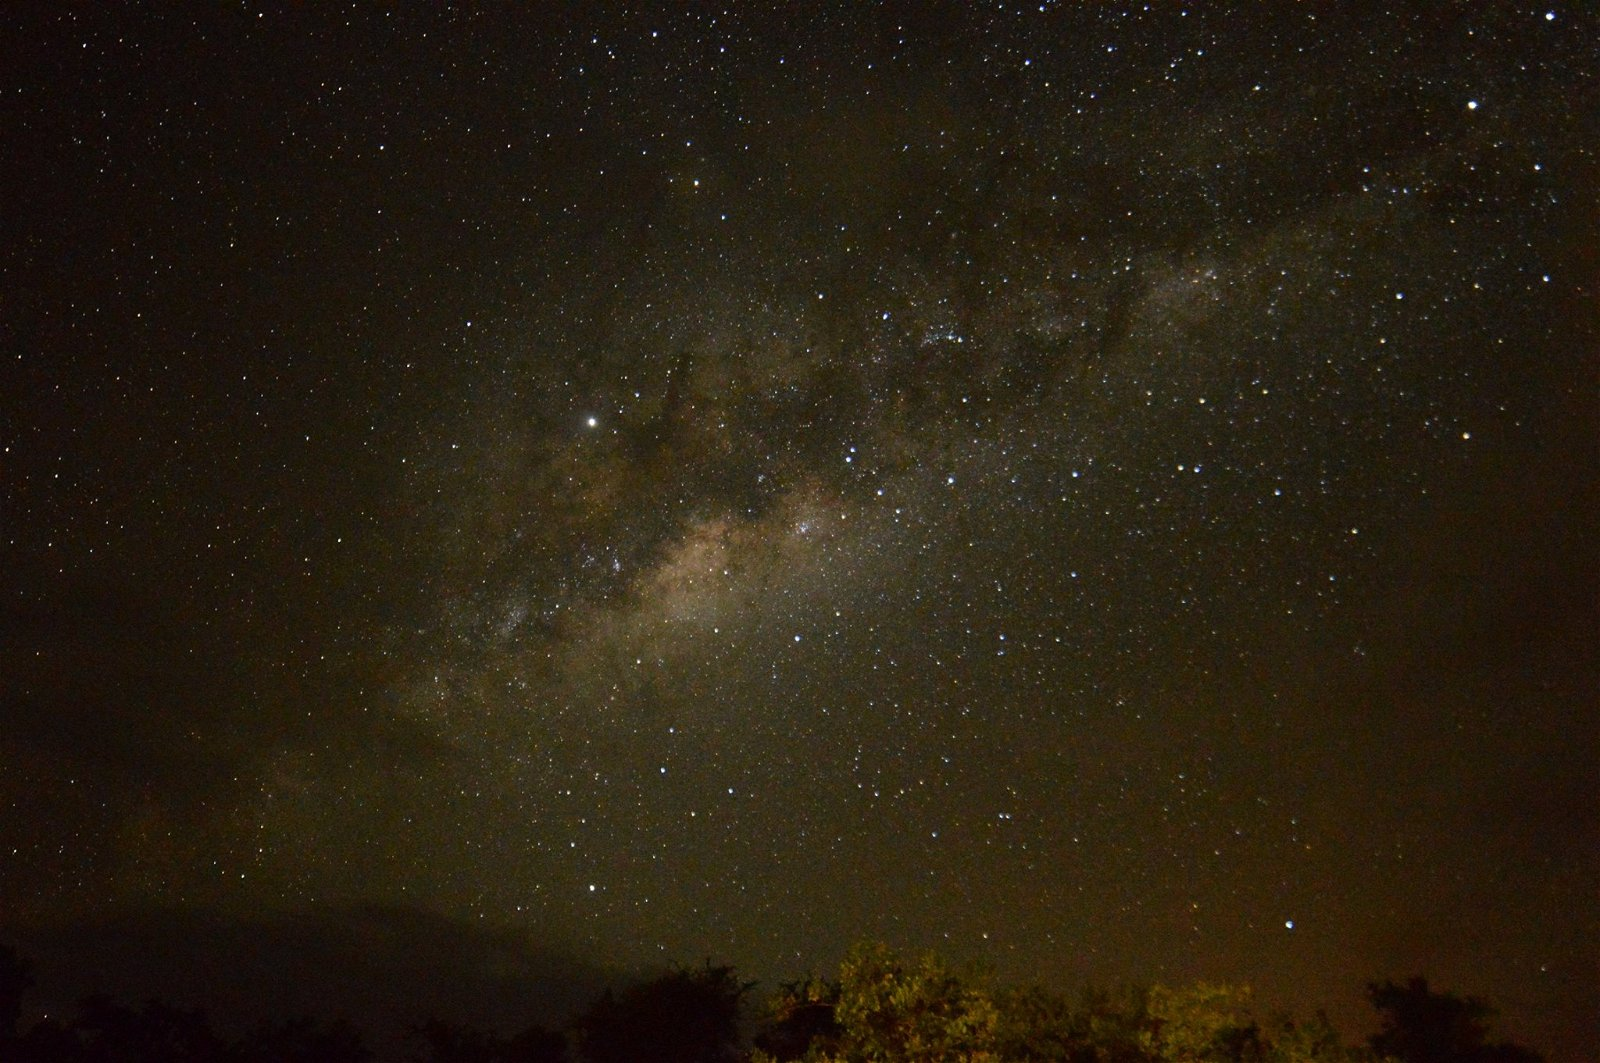 The South African nigh sky